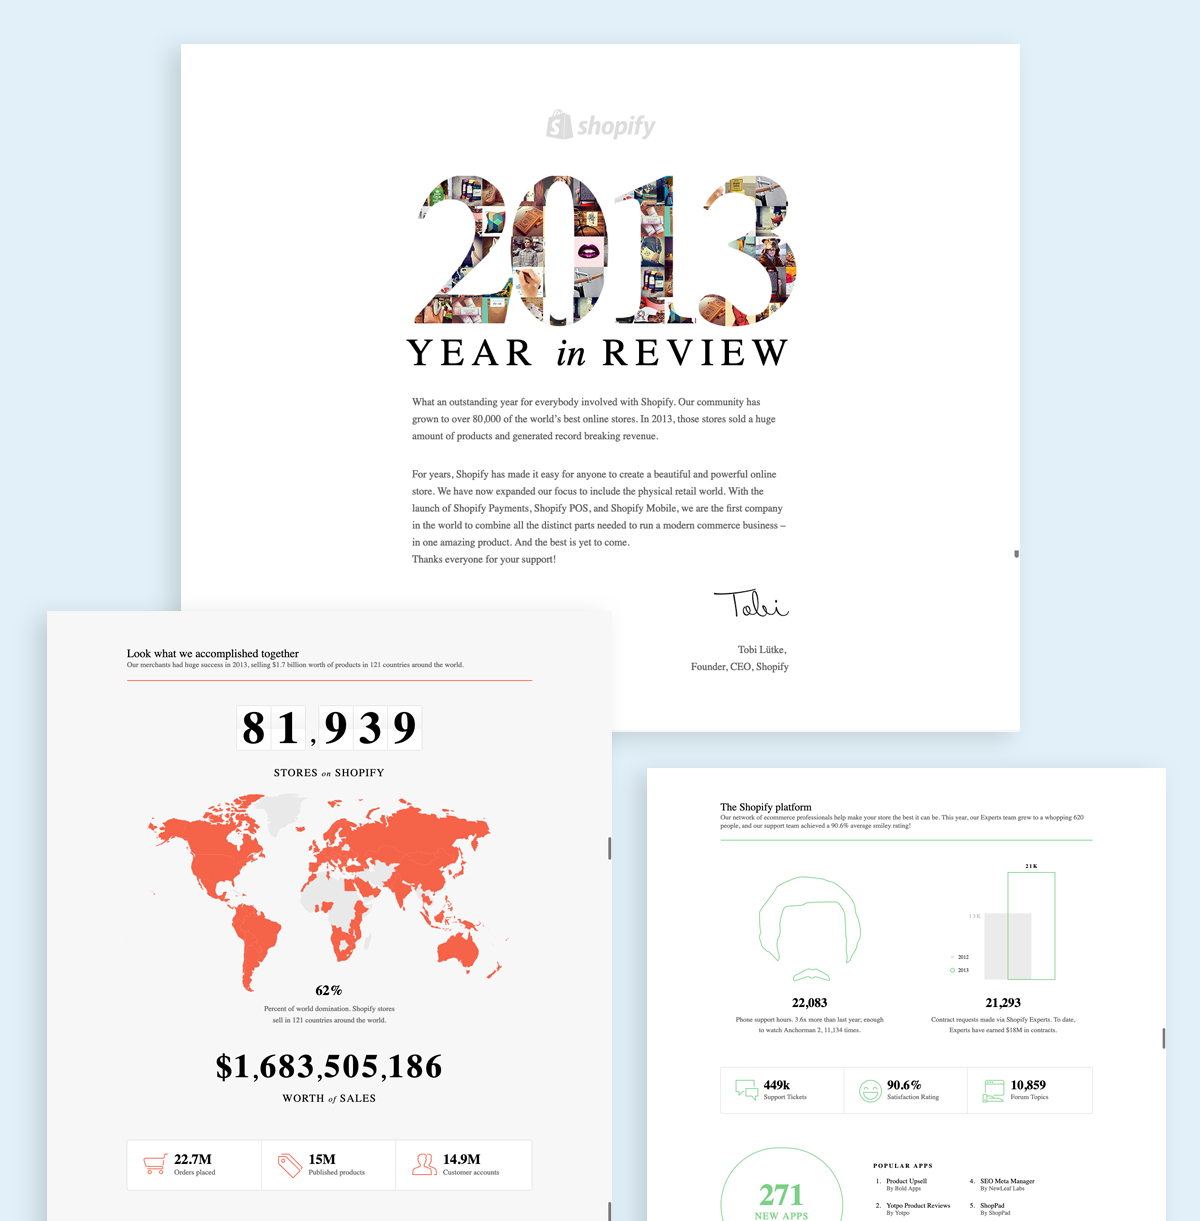 annual report design examples shopify 2013